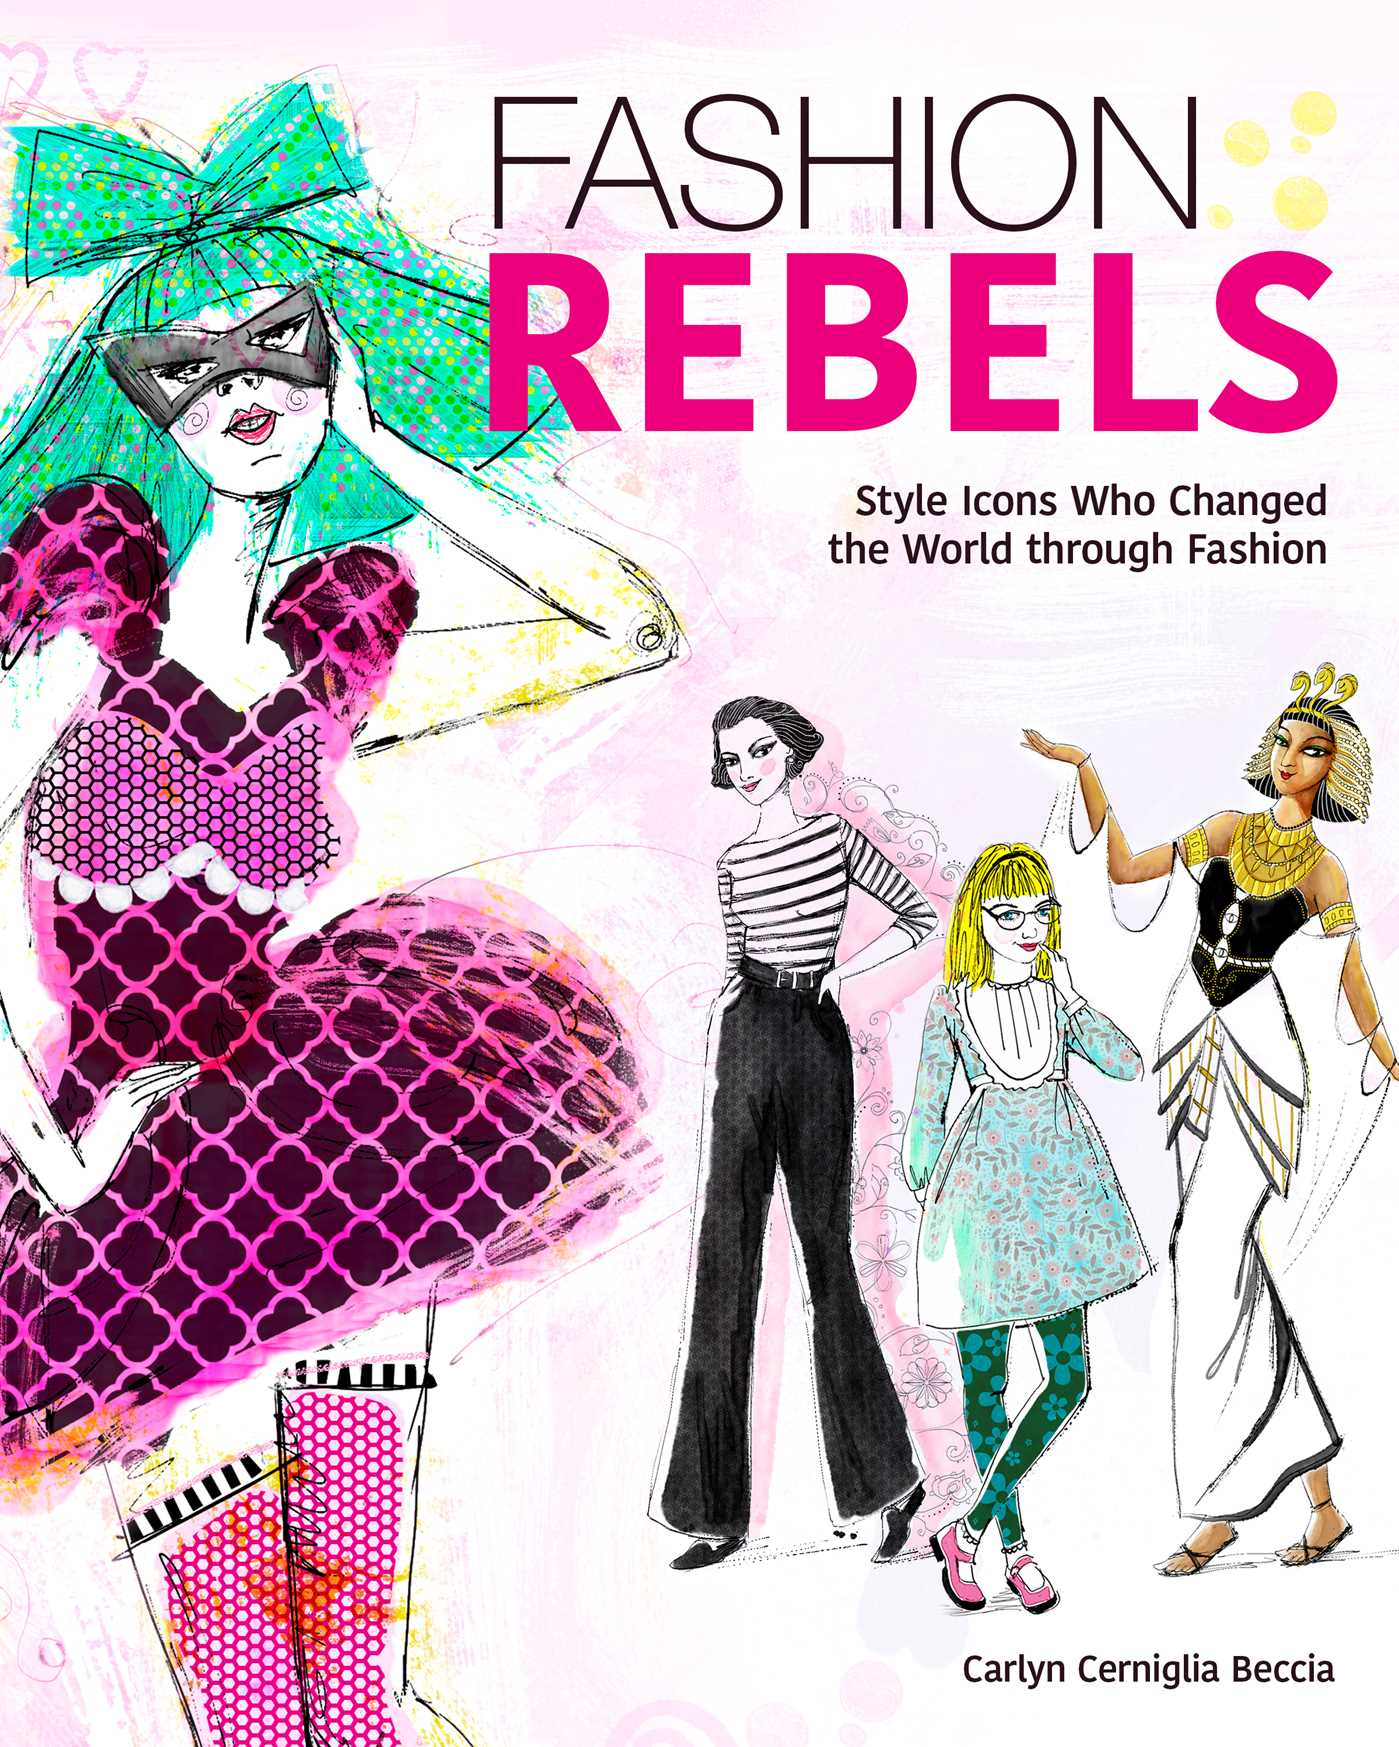 Fashion Rebels by Carlyn Beccia ages 8-12